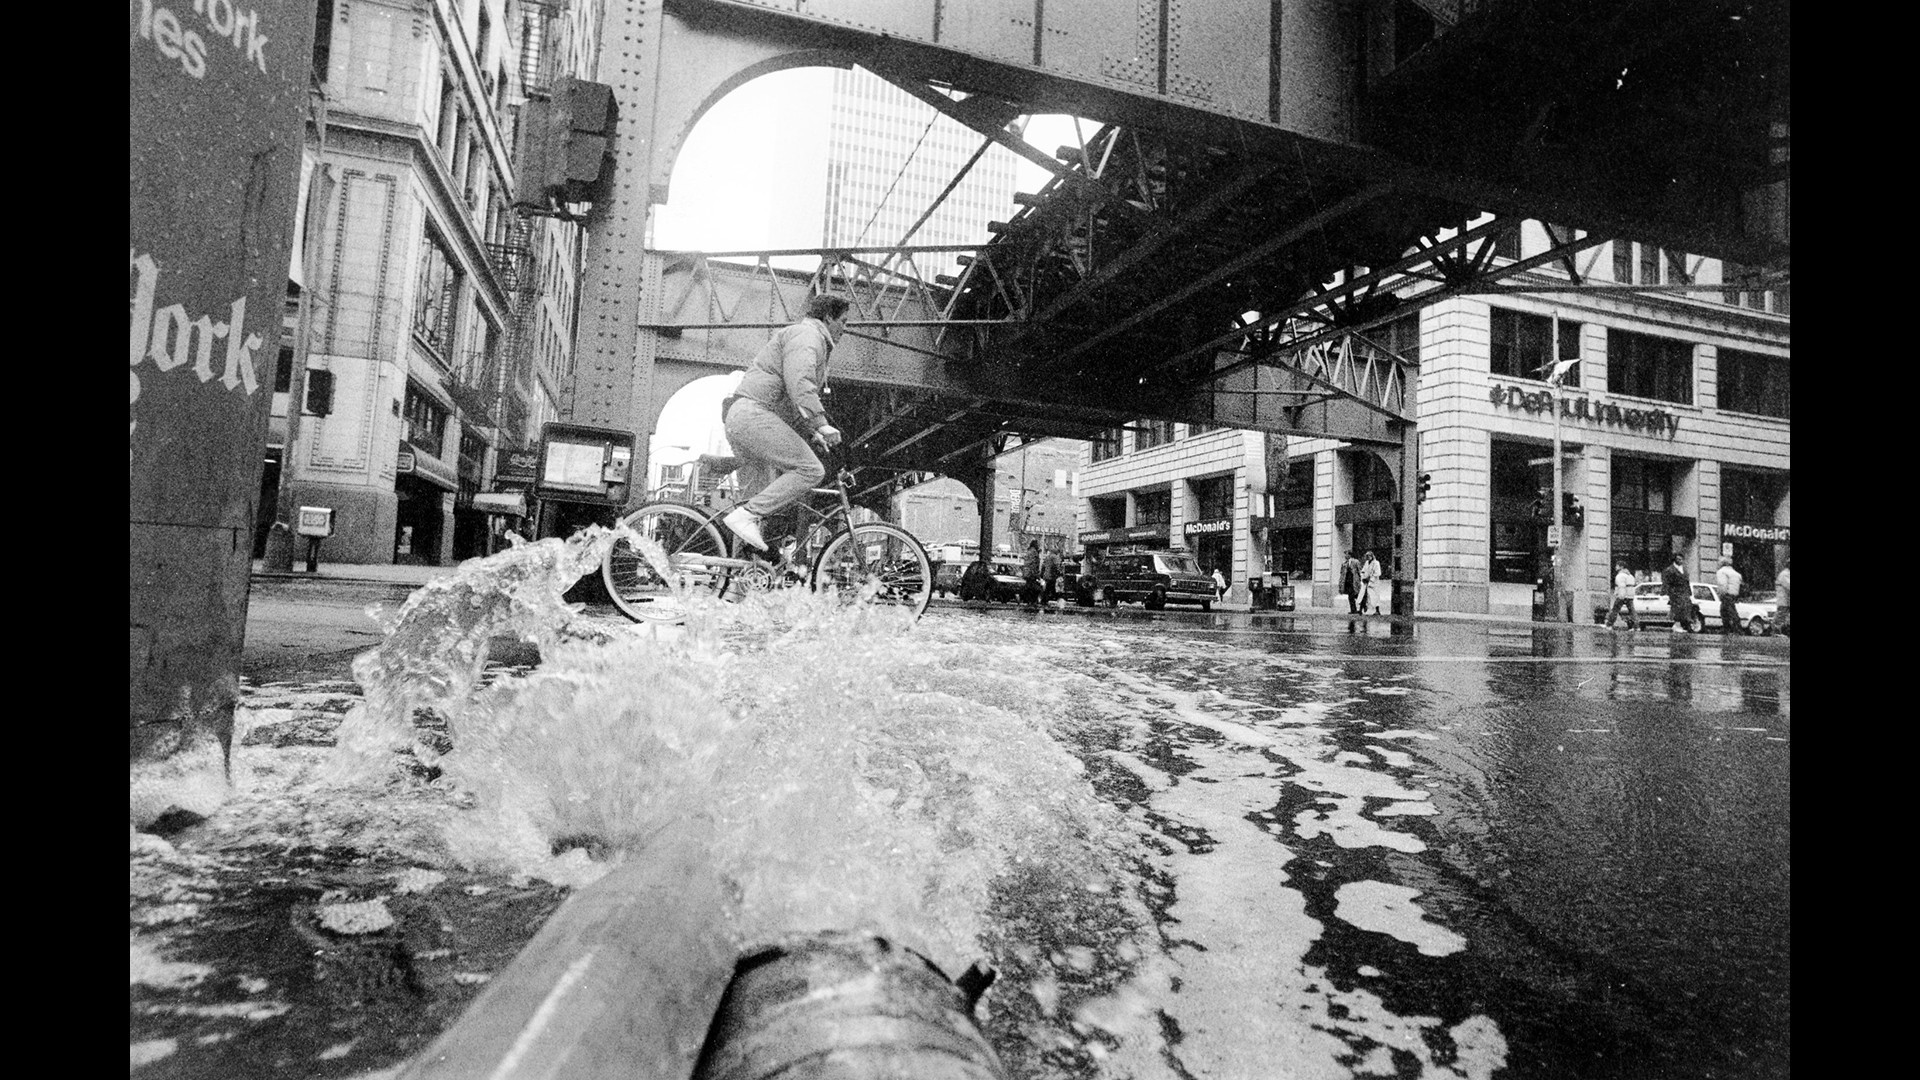 A watershed moment: 25th anniversary of the Great Chicago Flood